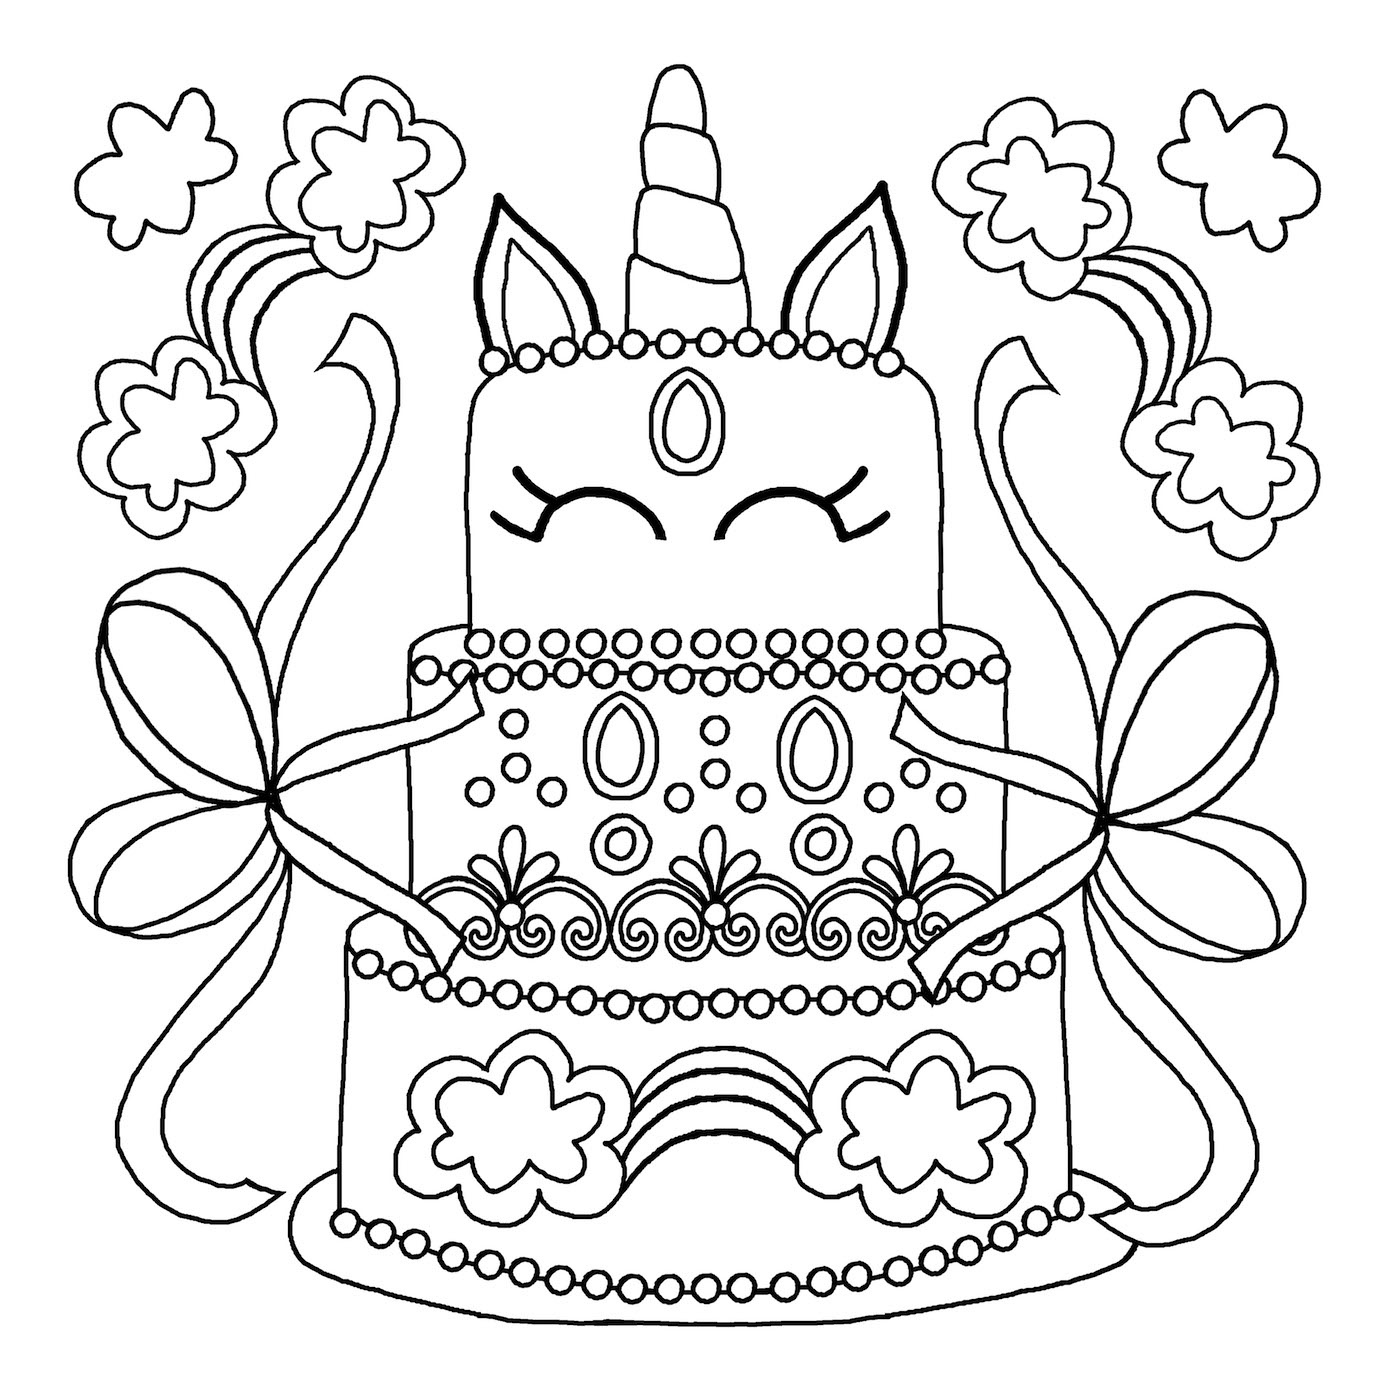 slime cake coloring pages